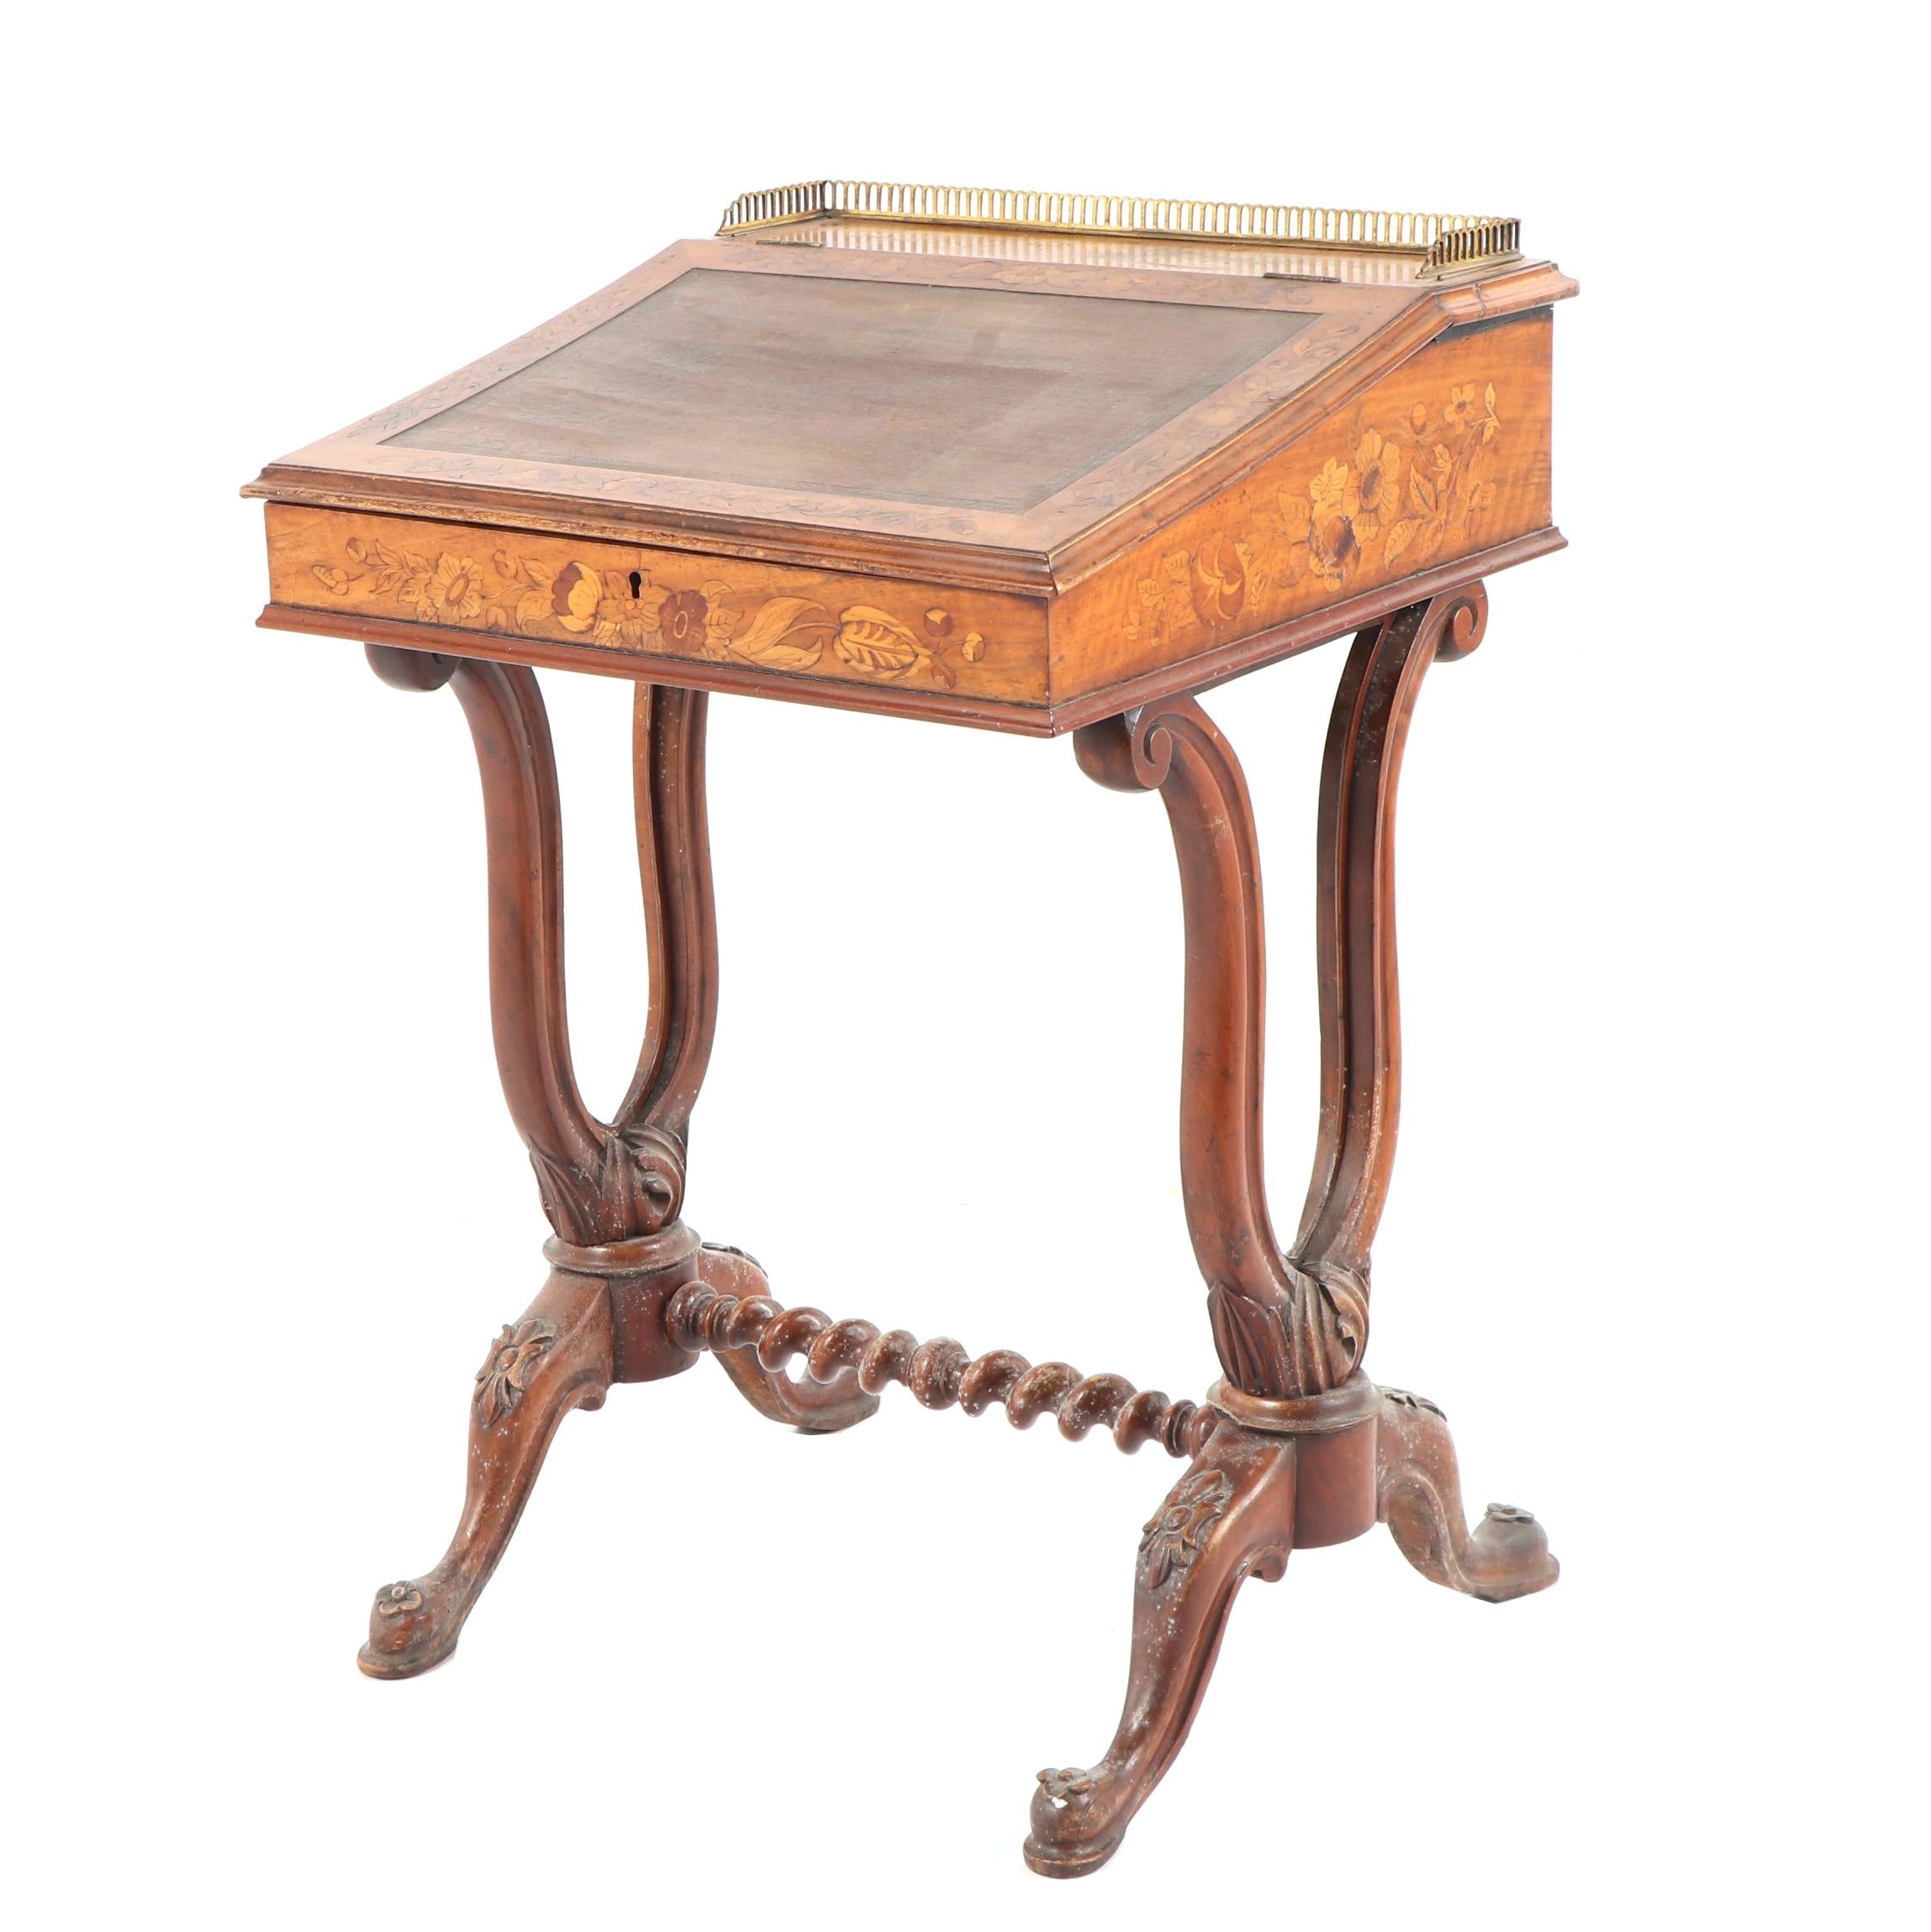 Victorian Walnut and Marquetry Davenport, Mid 19th century